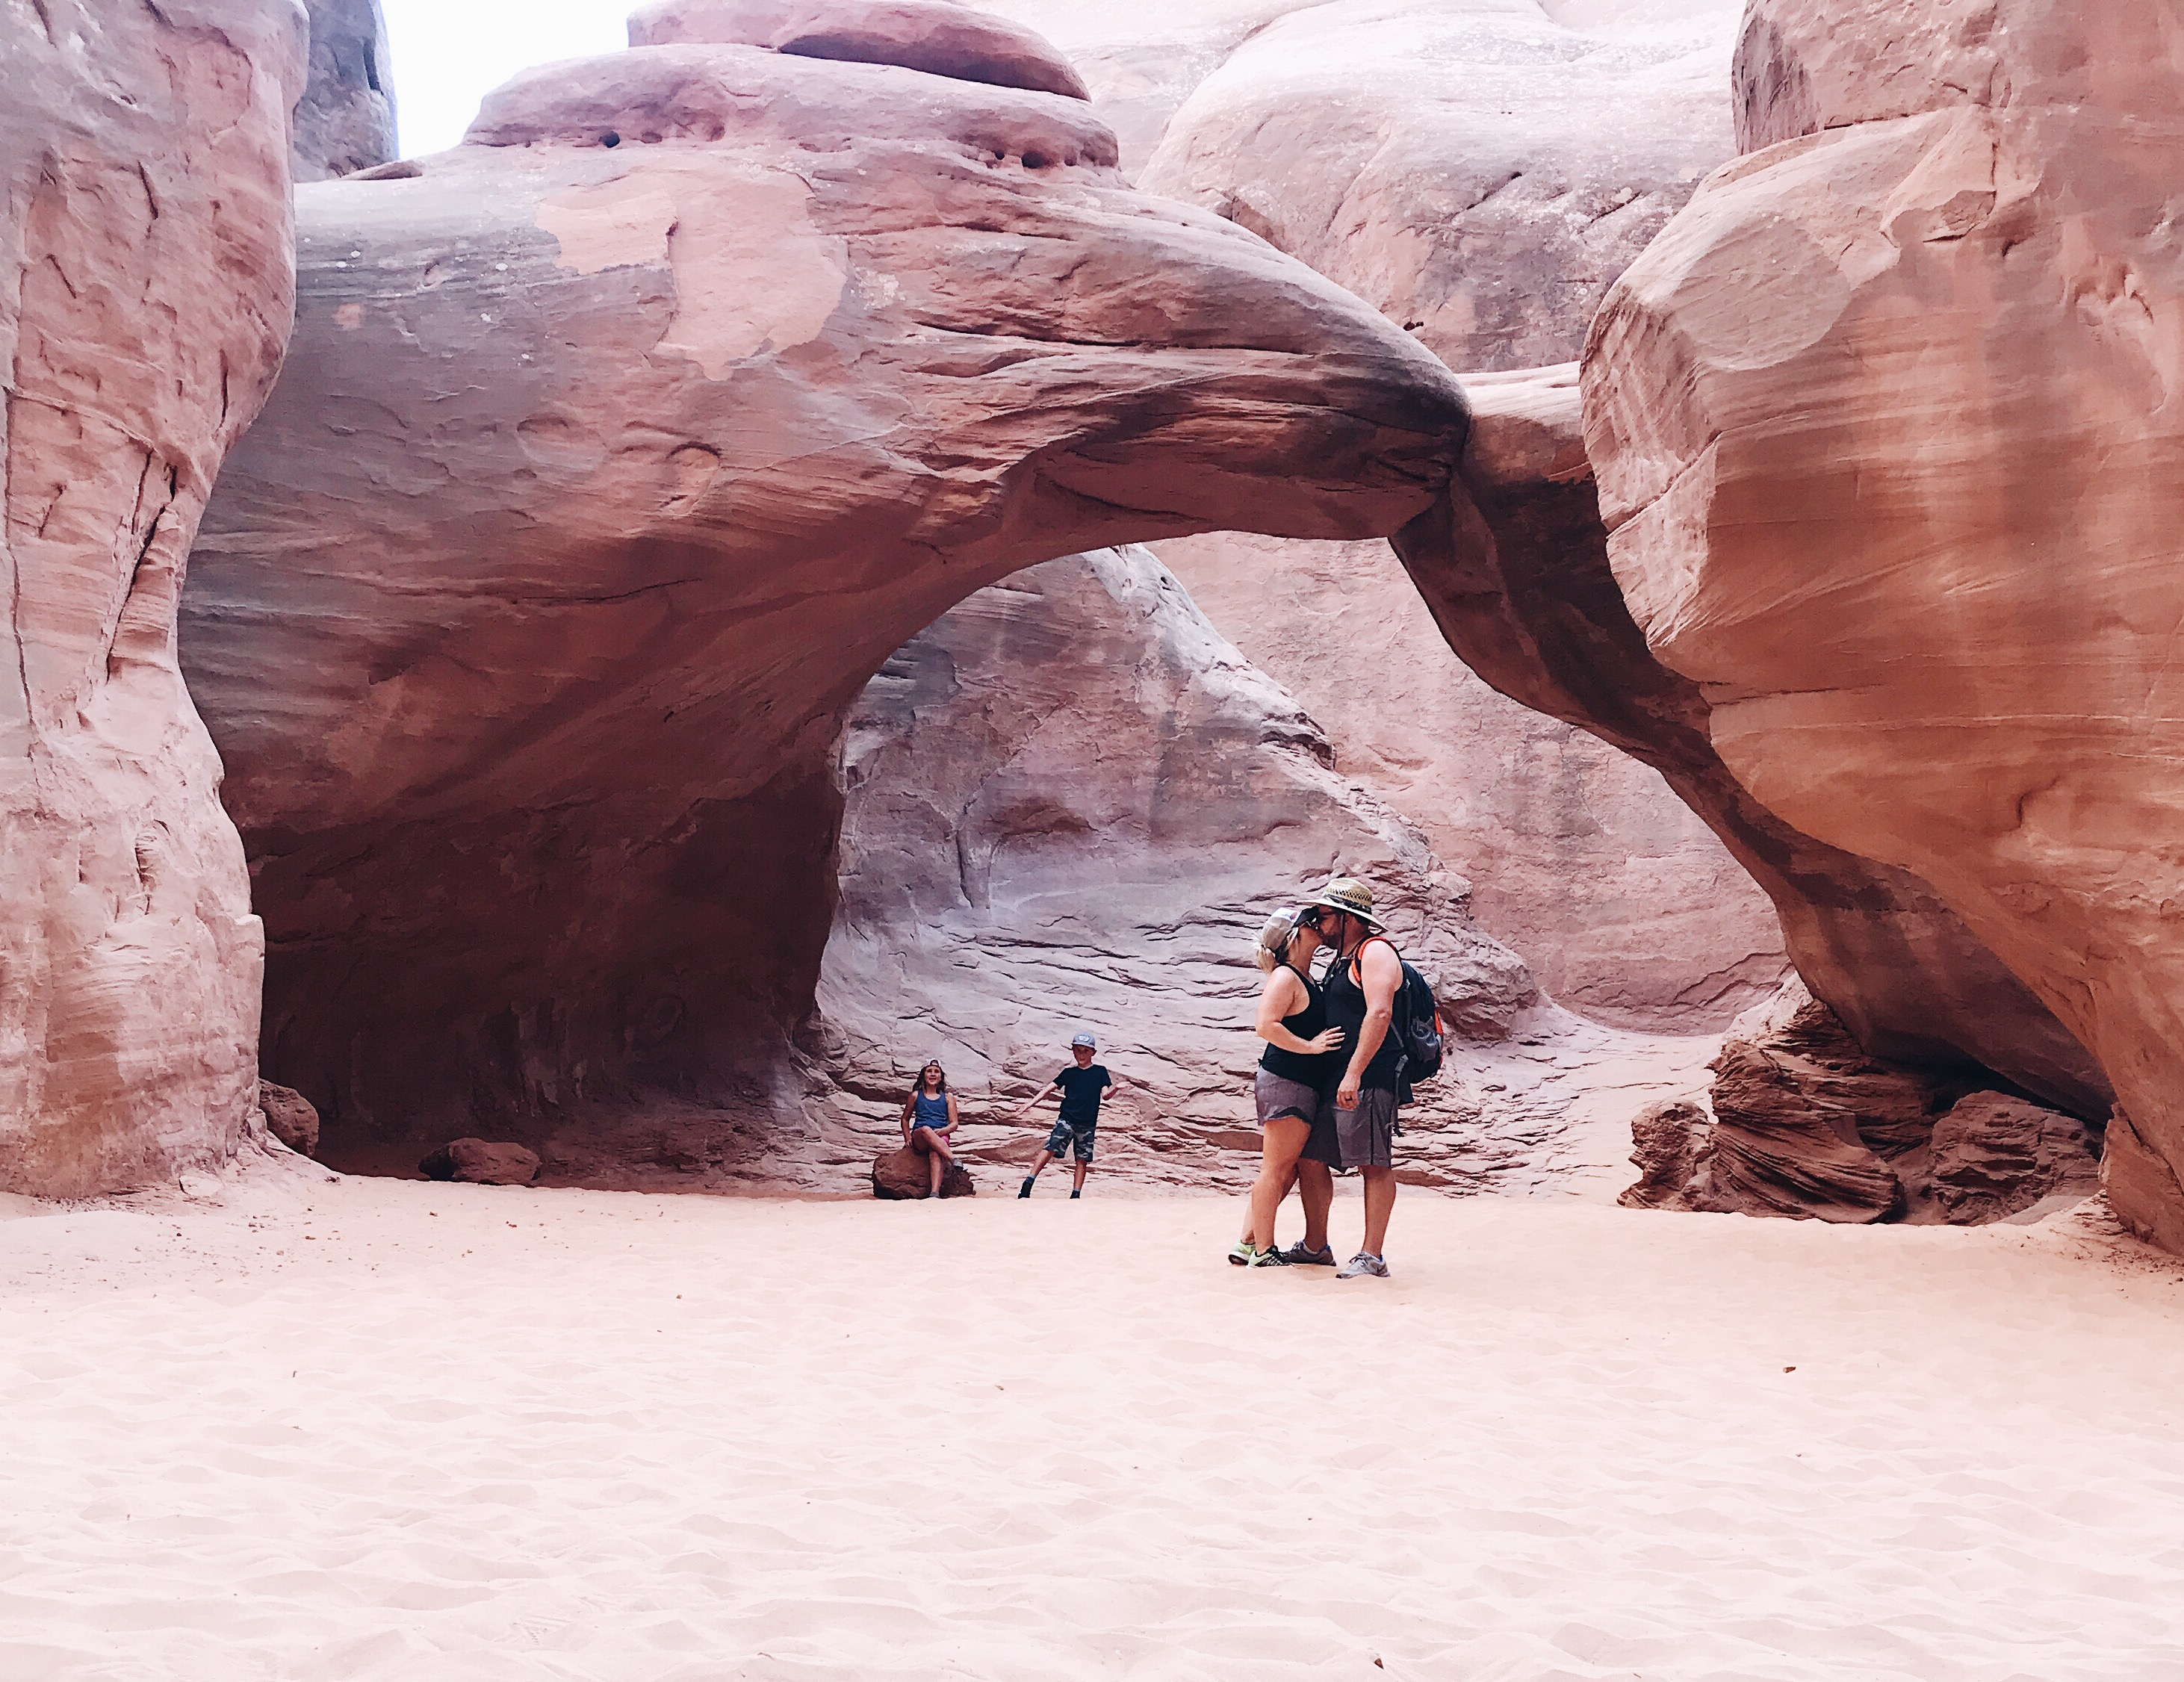 Day 10: Arches National Park